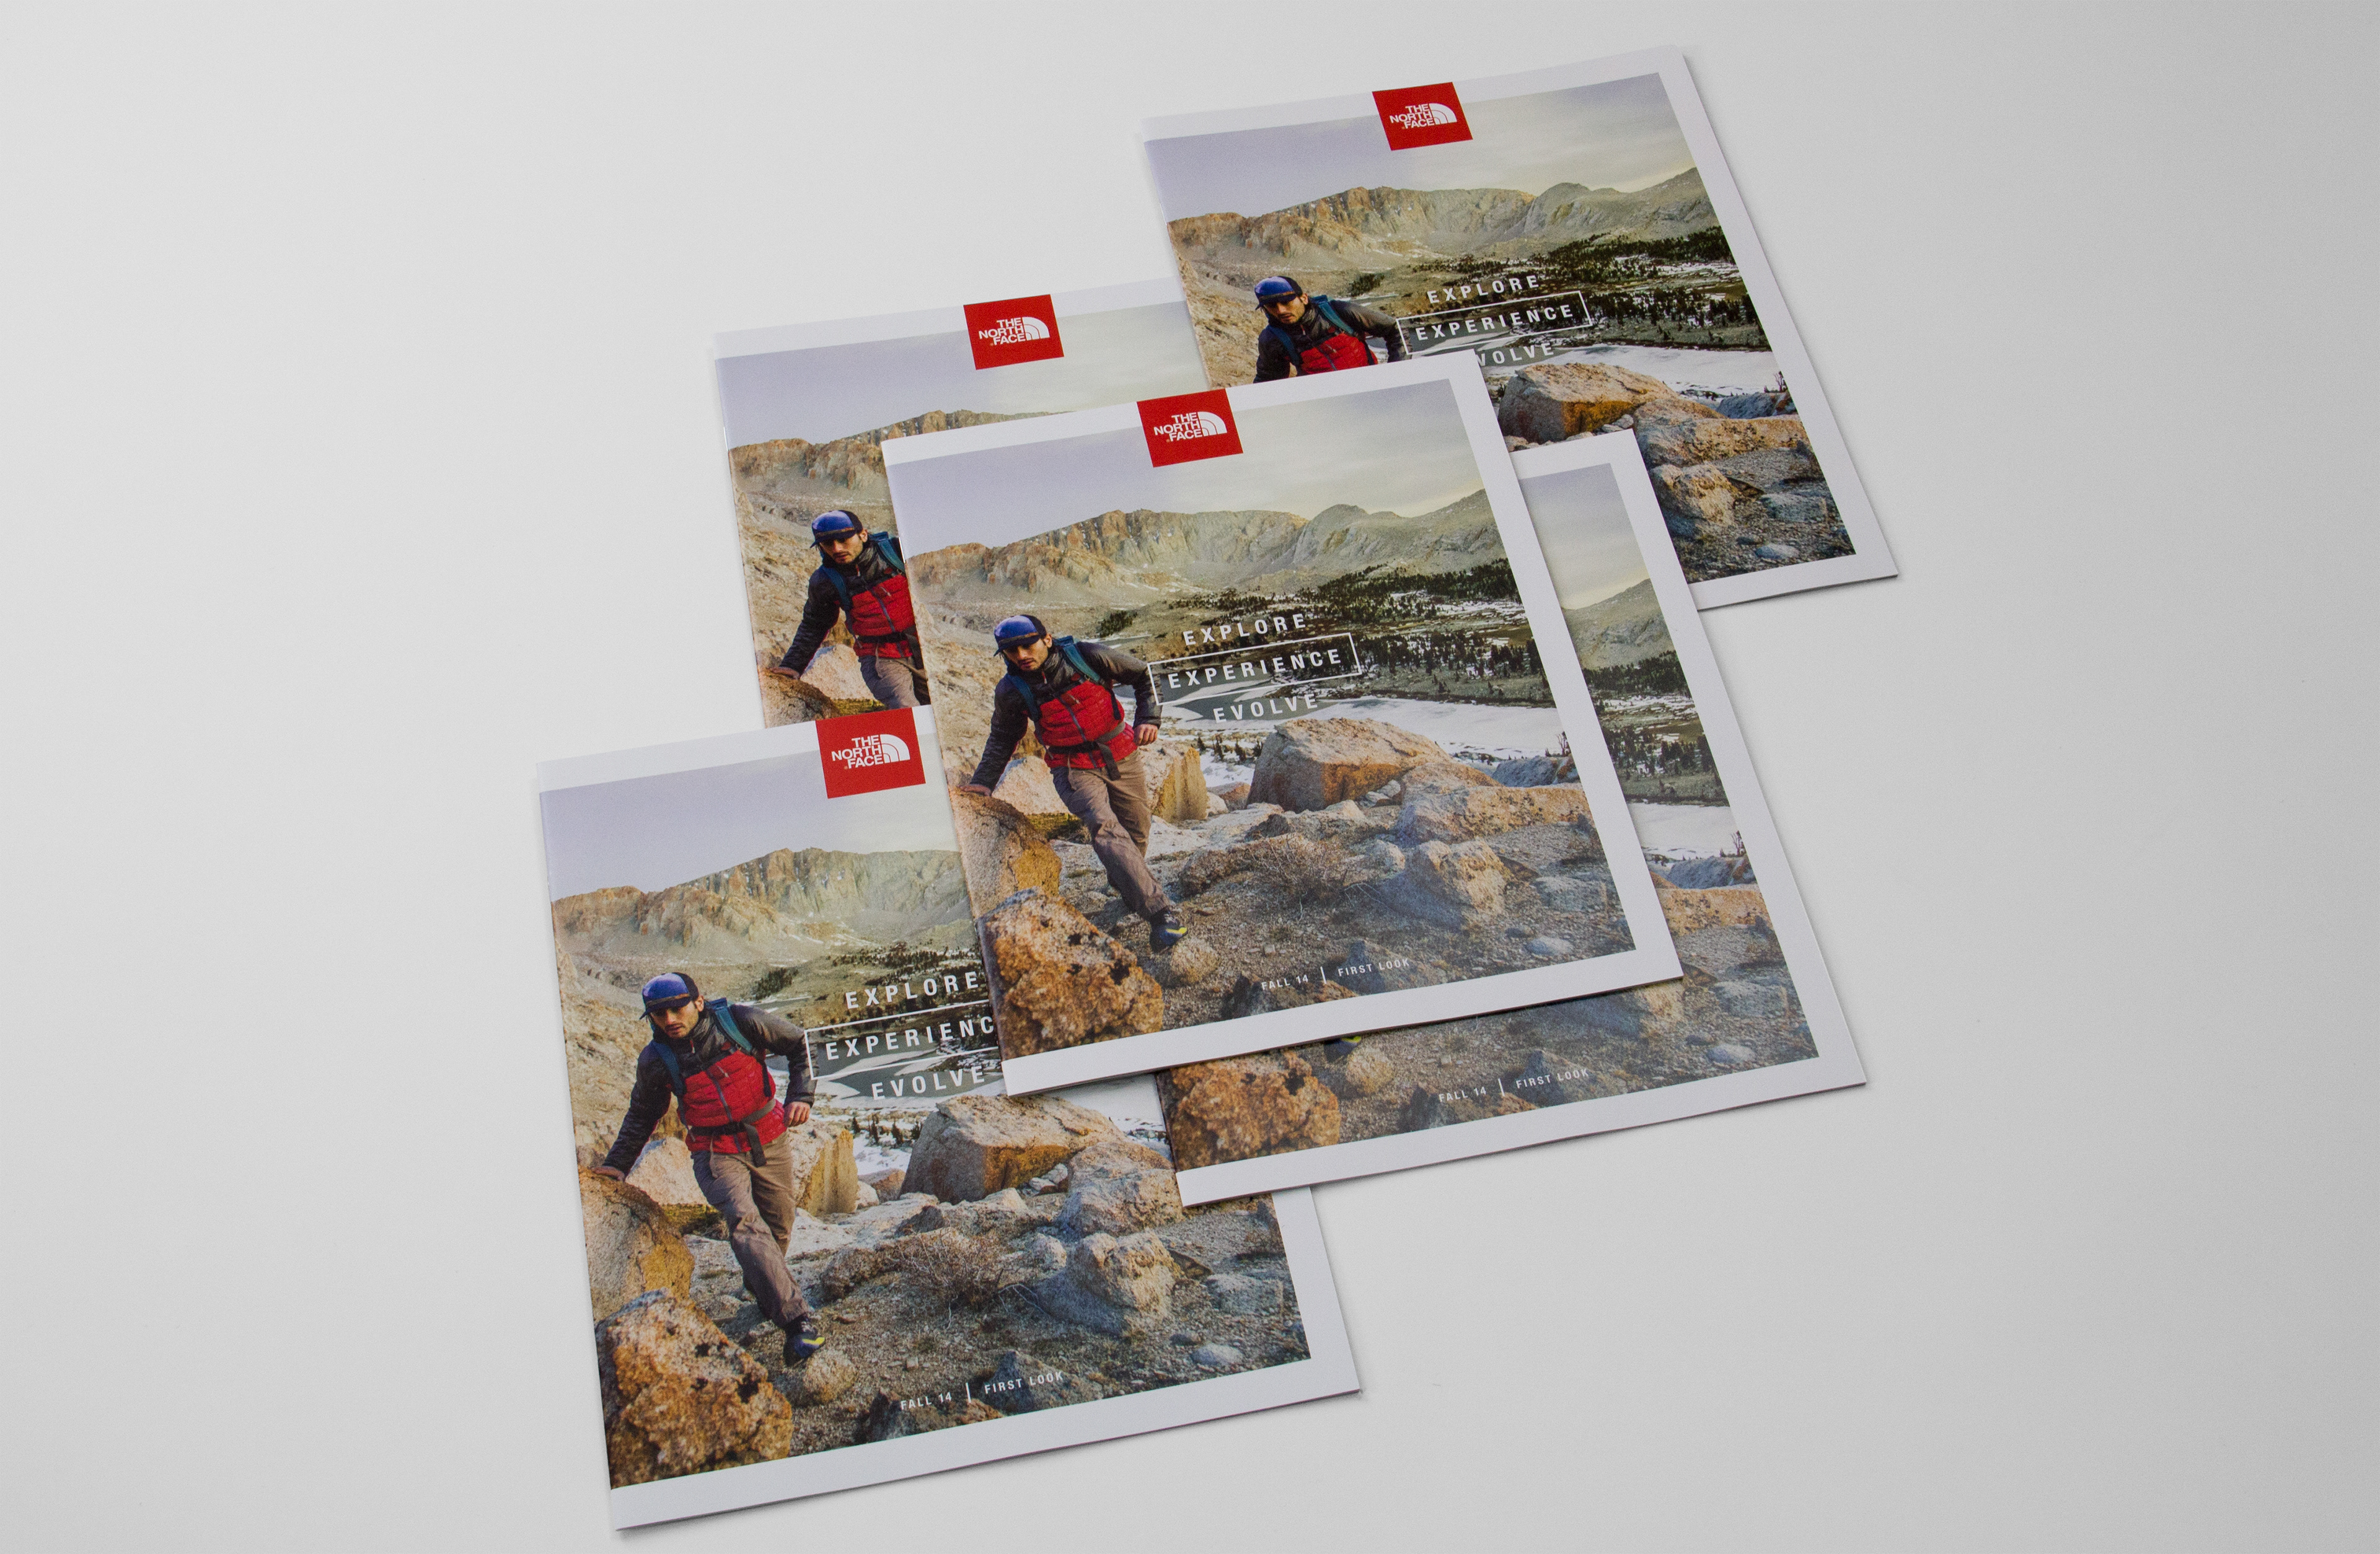 Stephen hausrath the north face fall first look catalog worked on the production of this catalog making mechanicals and retouching images led a team of retouchers focusing on consistency and product buycottarizona